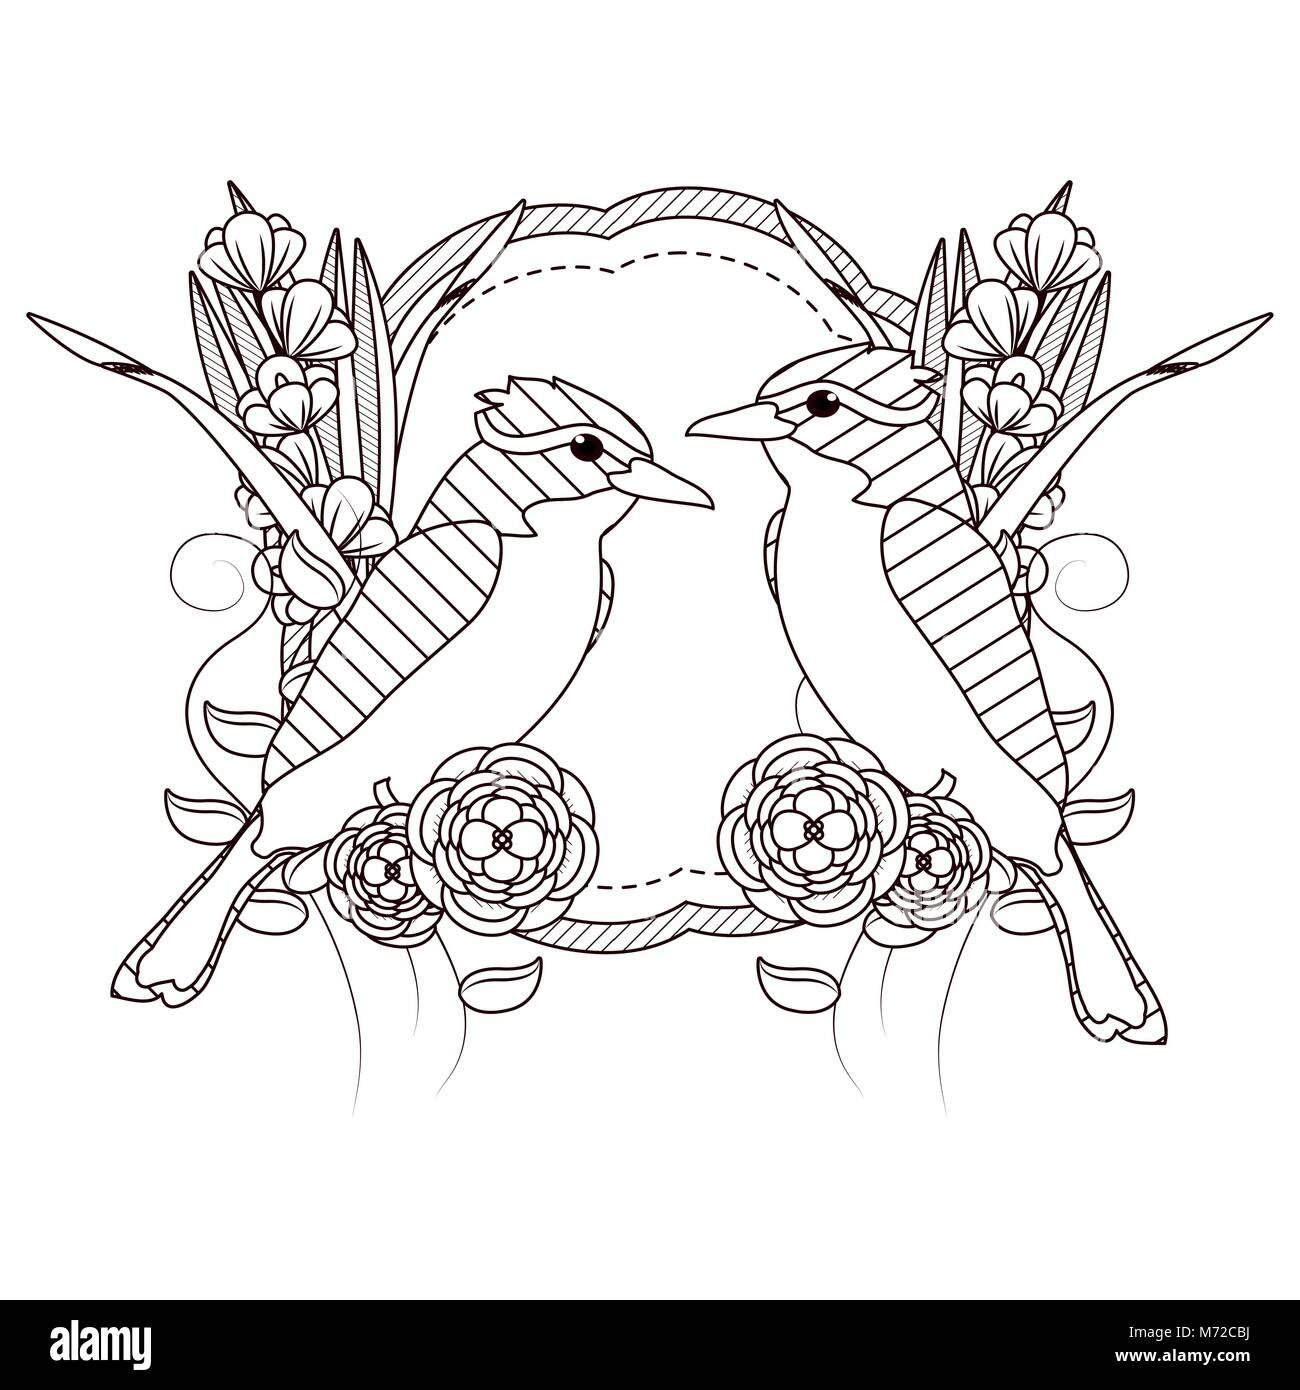 Beautiful Birds Drawings On Black And White Stock Vector Image Art Alamy